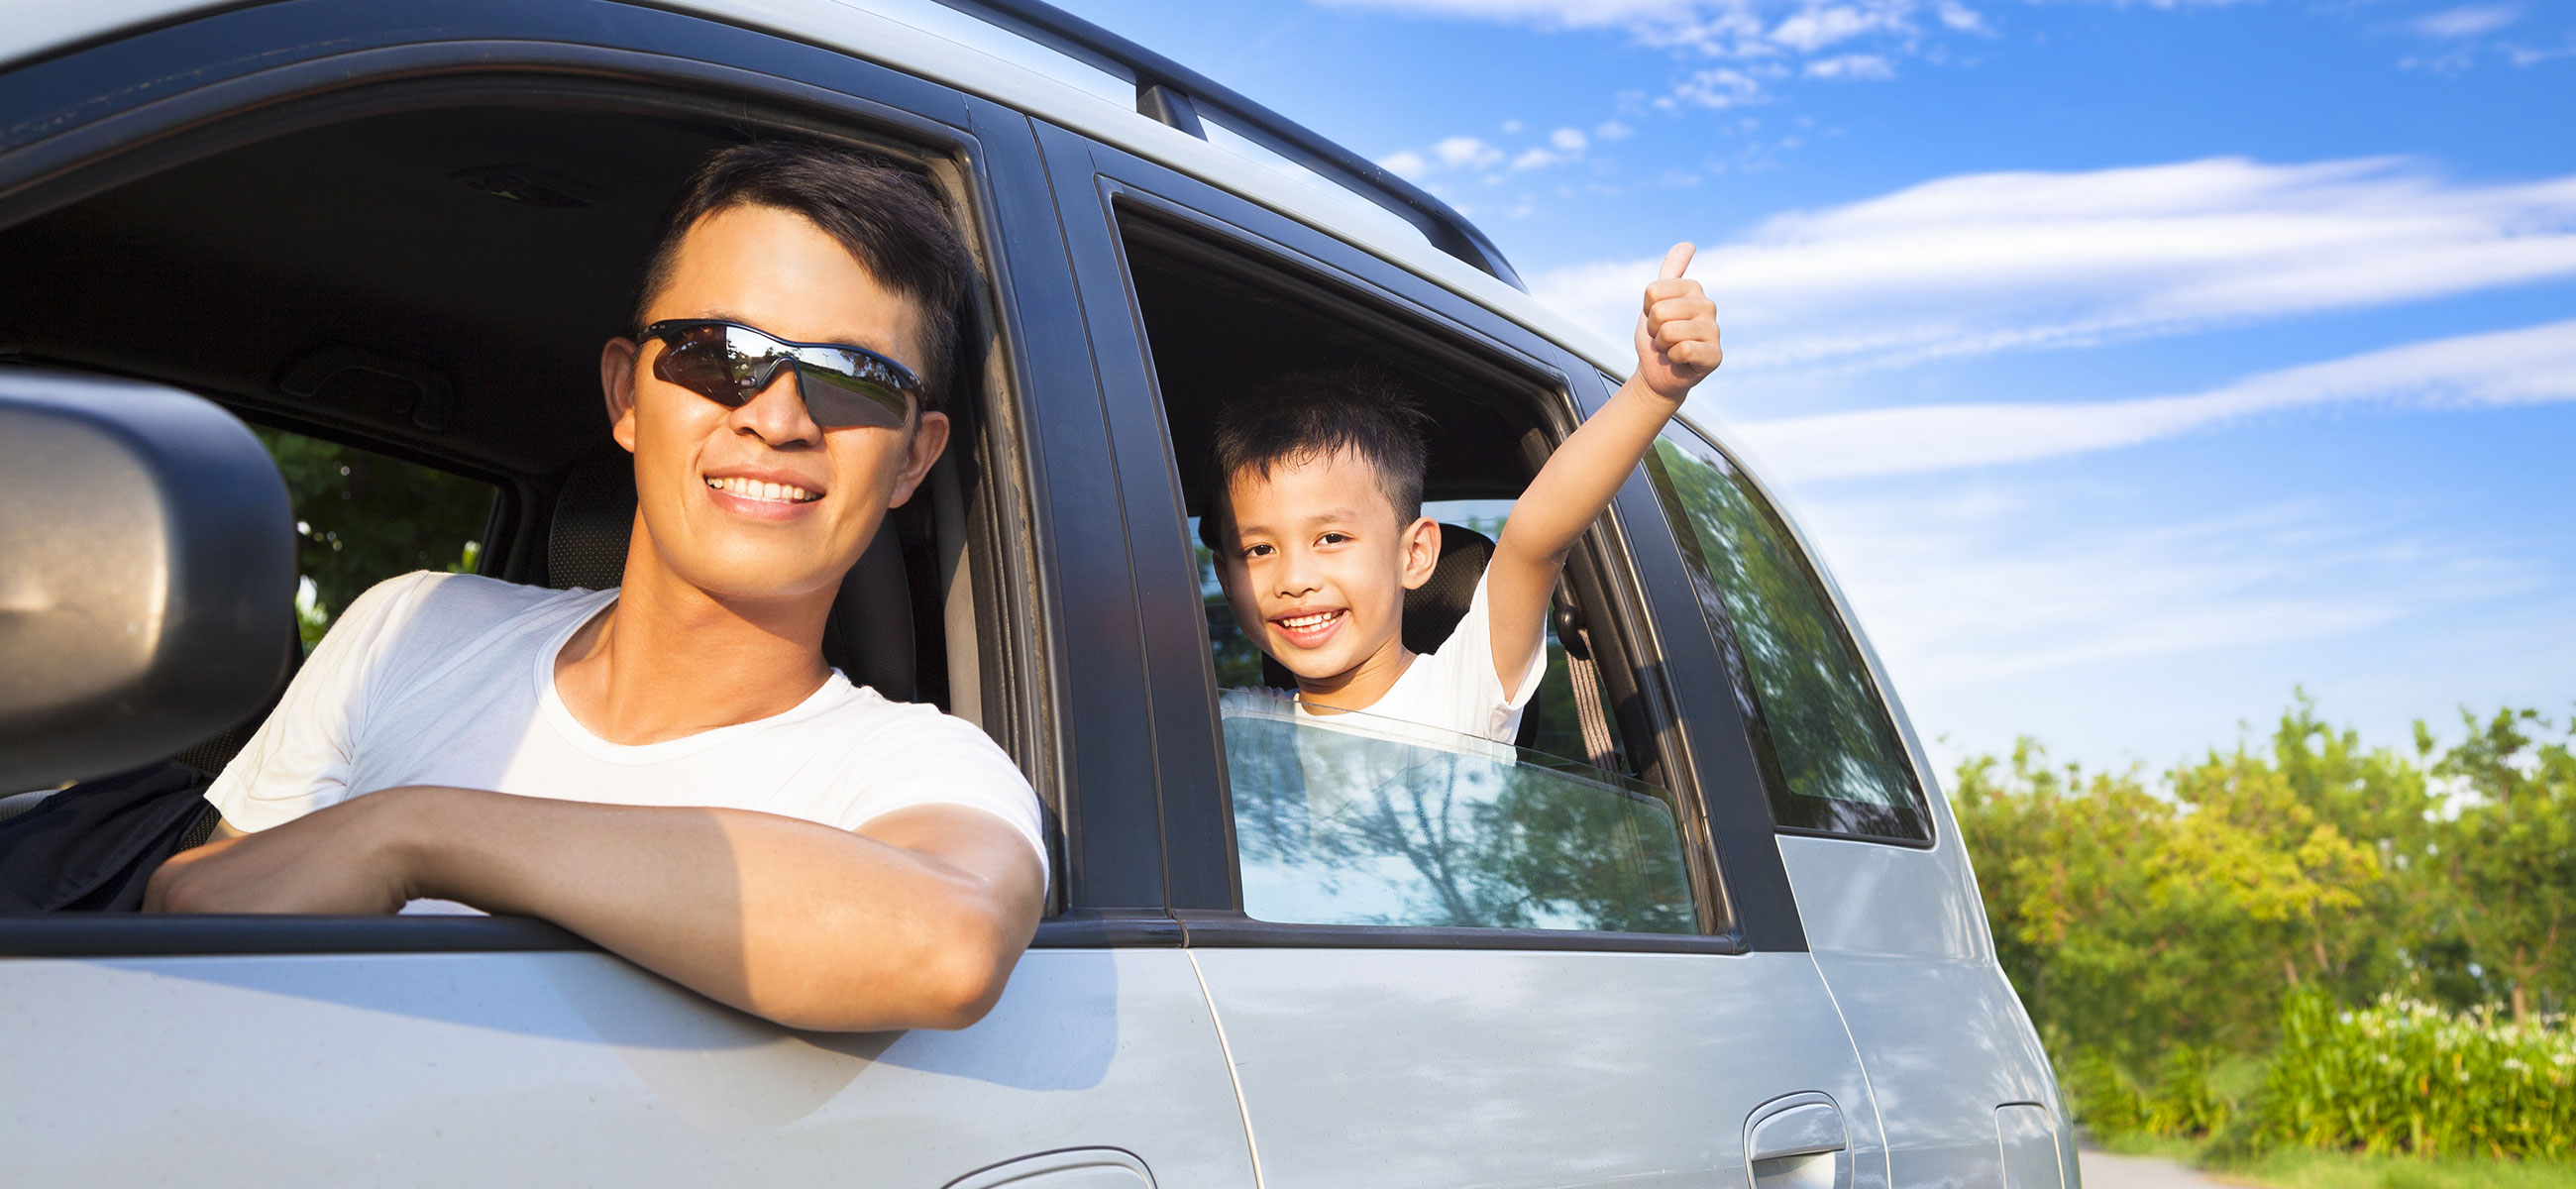 Florida Auto with Auto Insurance Coverage